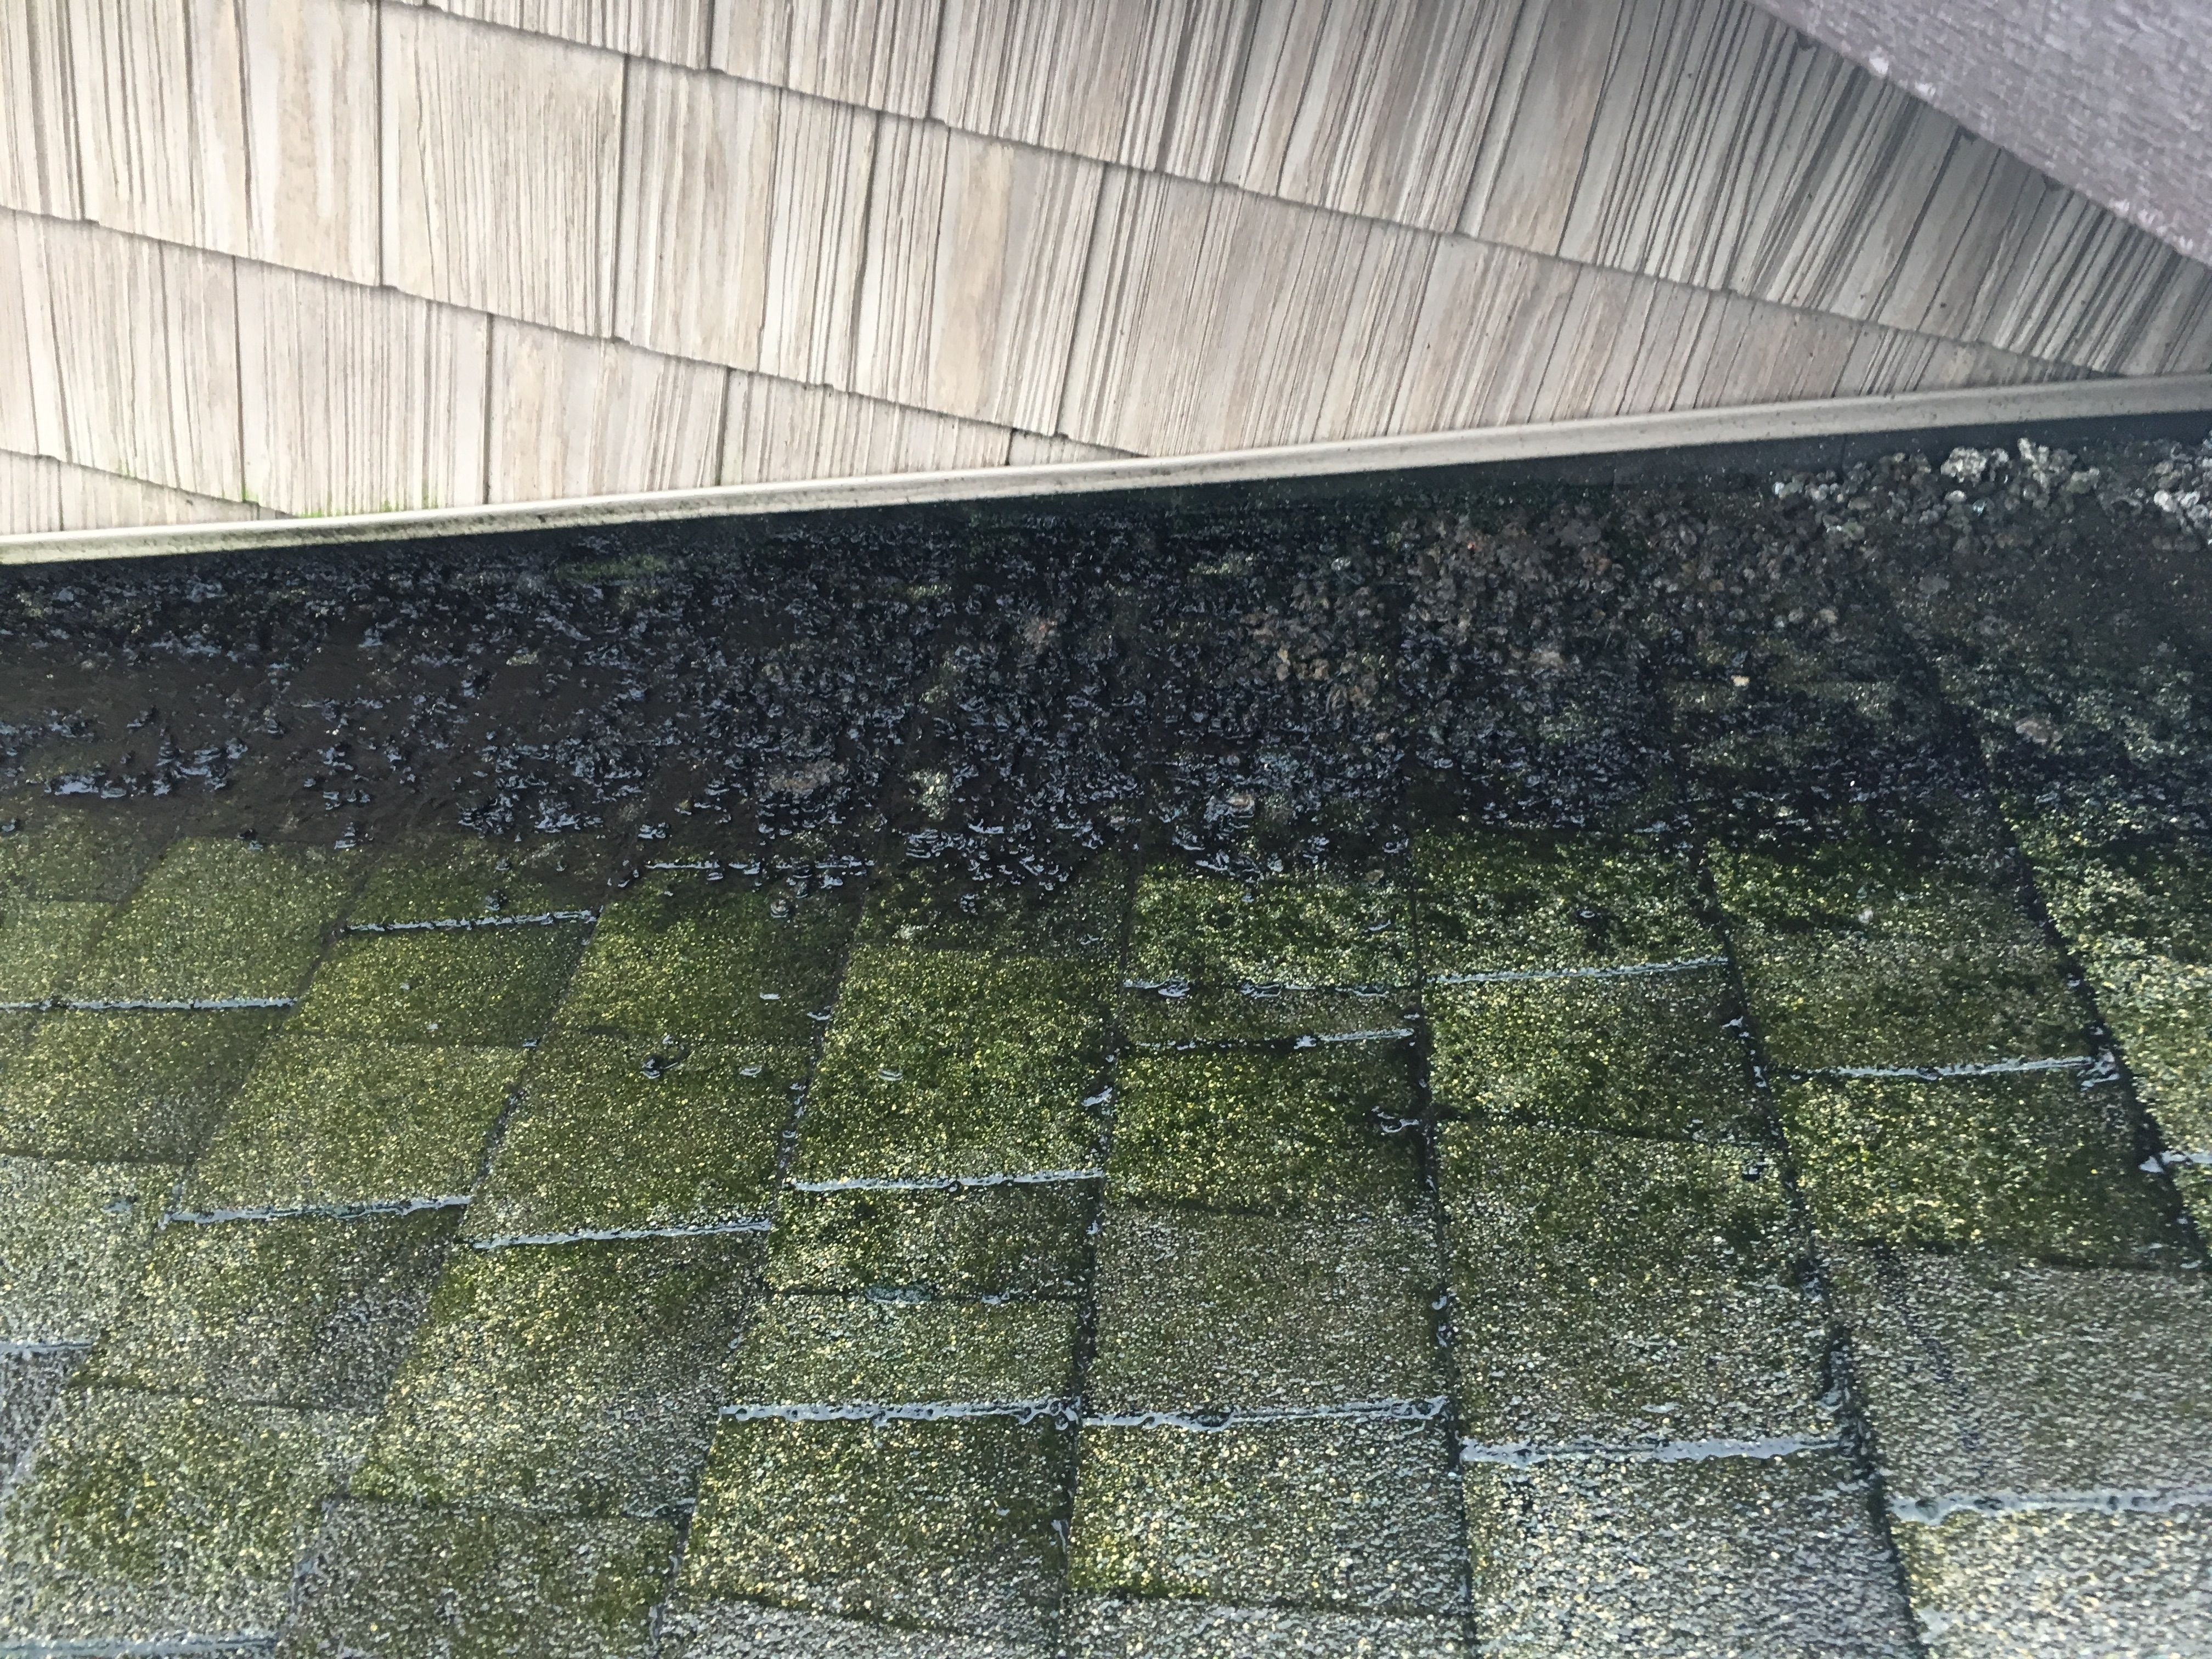 Bird Droppings And Damage We Specialize In Flat Roof Systems Relevant Roofing Are Roofing Specialists I Roofing Specialists Roof Restoration Flat Roof Repair